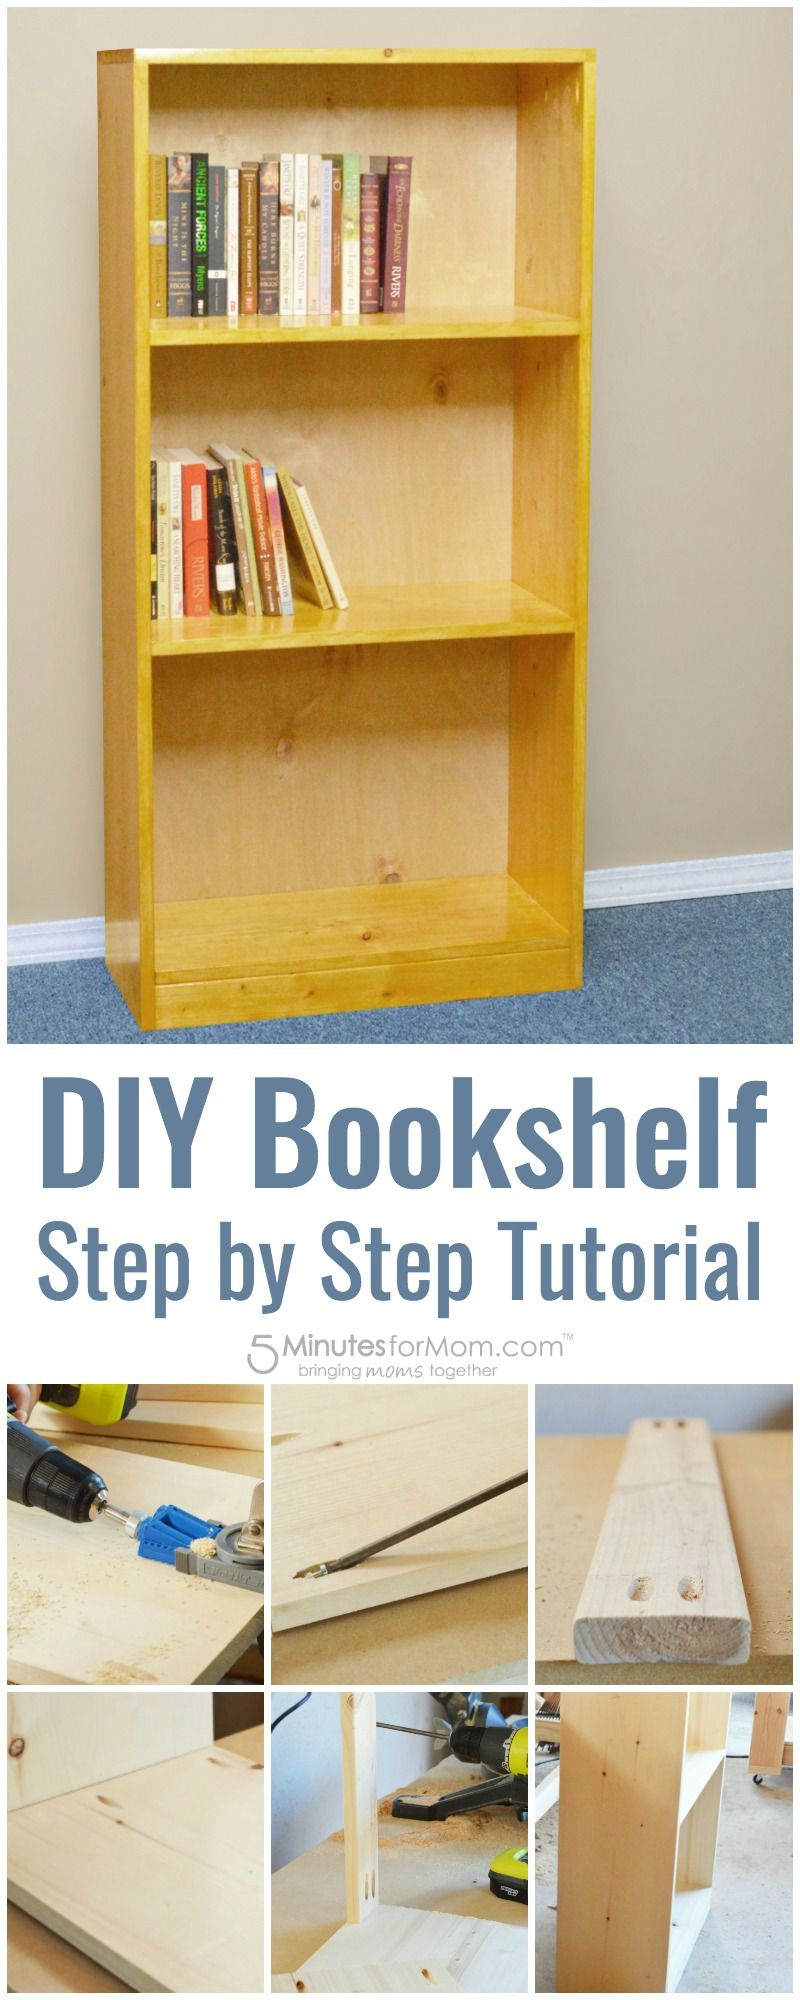 diy basic bookshelf step by step tutorial how to make a bookcase for beginners making your own bookshelves is a great way to save money and create a - Build Your Own Bookshelves